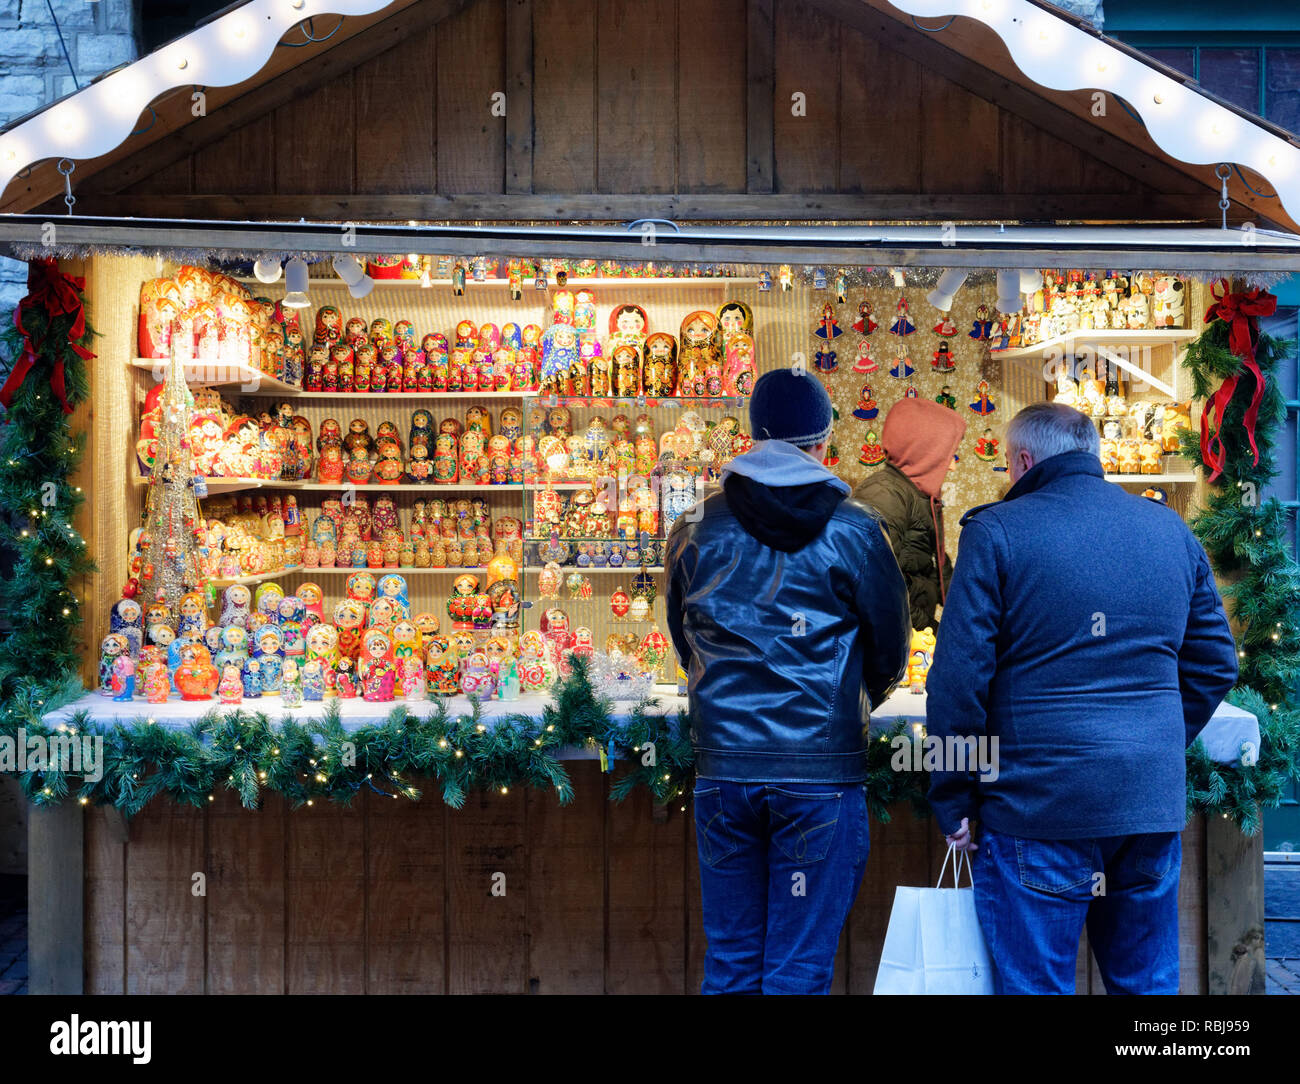 Two men looking at Russian Dolls in the Toronto Christmas Market in the Distillery District - Stock Image